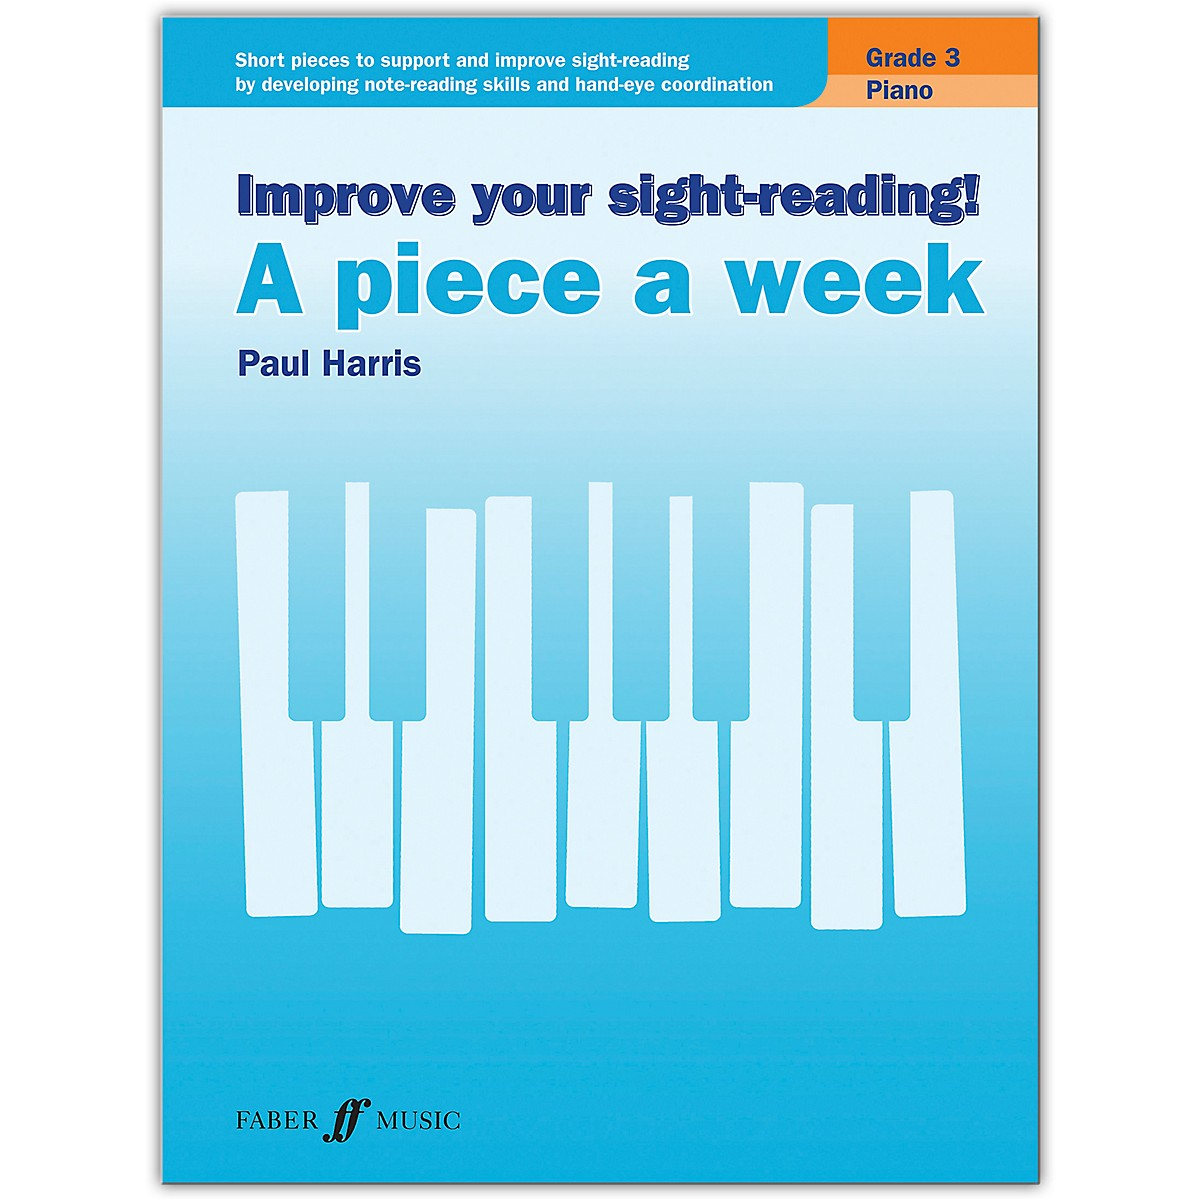 Faber Music LTD Improve Your Sight-reading! Piano: A Piece a Week, Grade 3 Late Elementary